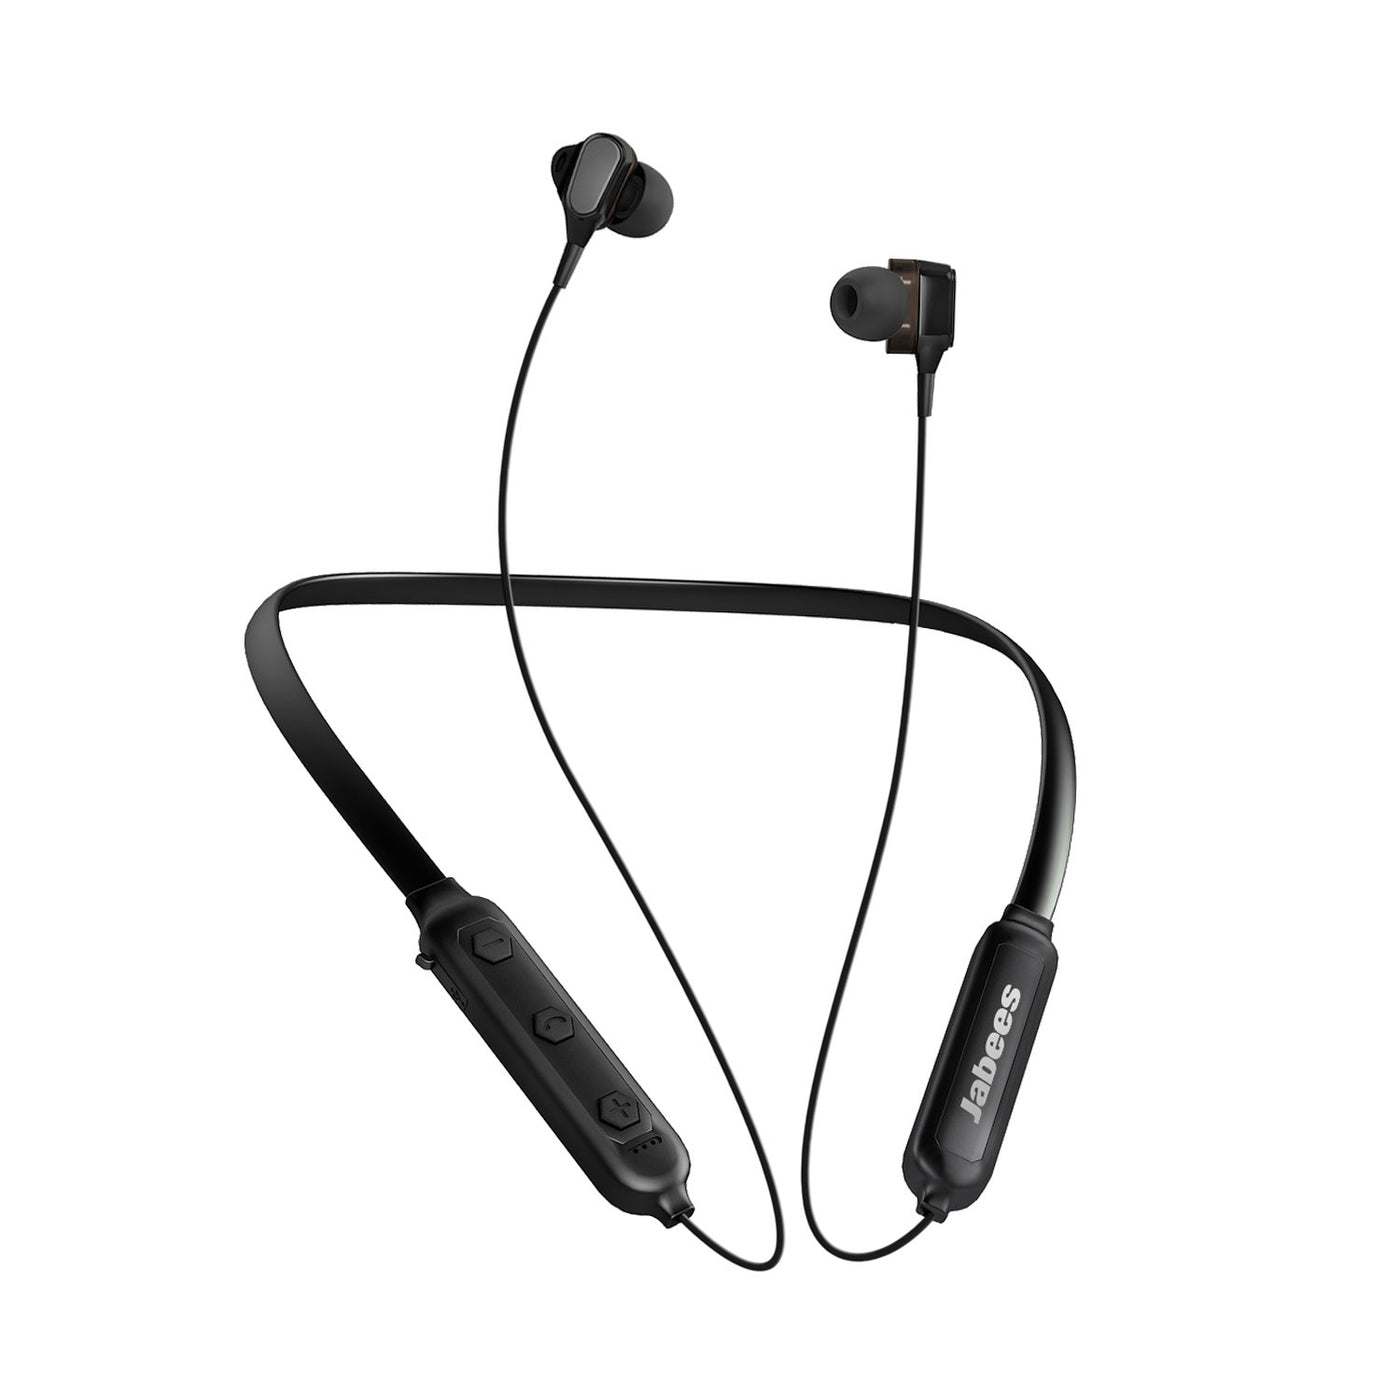 Jabees Duobees Bluetooth 5 0 Neckband Headphones With Dual Drivers Official Jabees Store